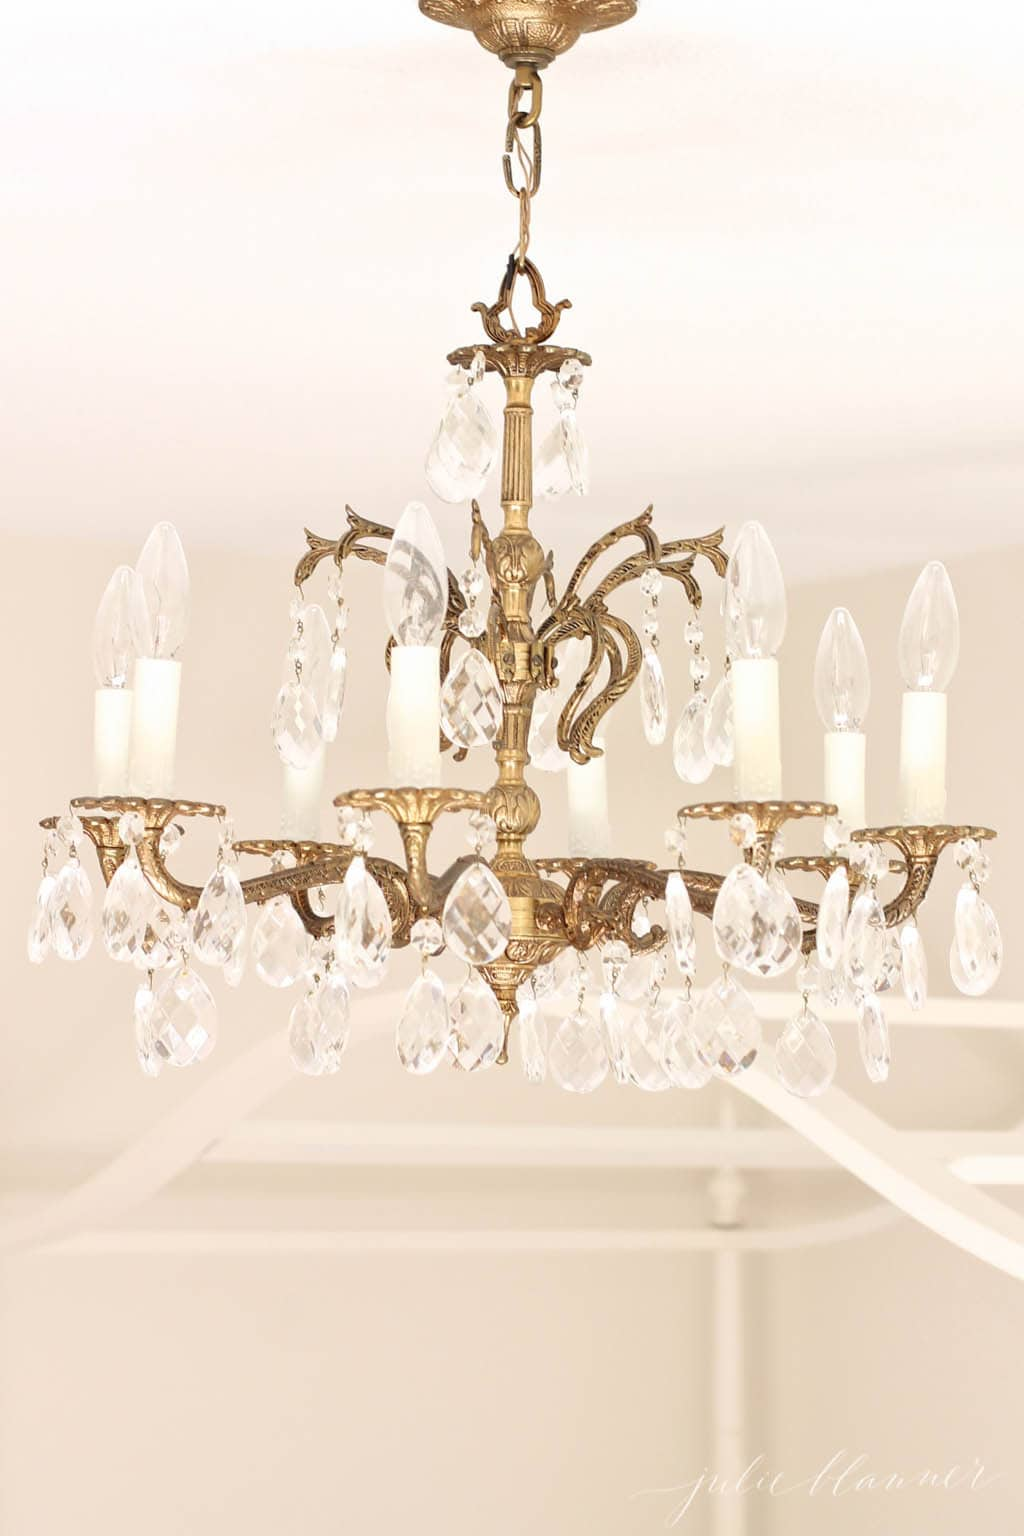 Brass U0026 Glass Chandelier For Little Girlu0027s Bedroom